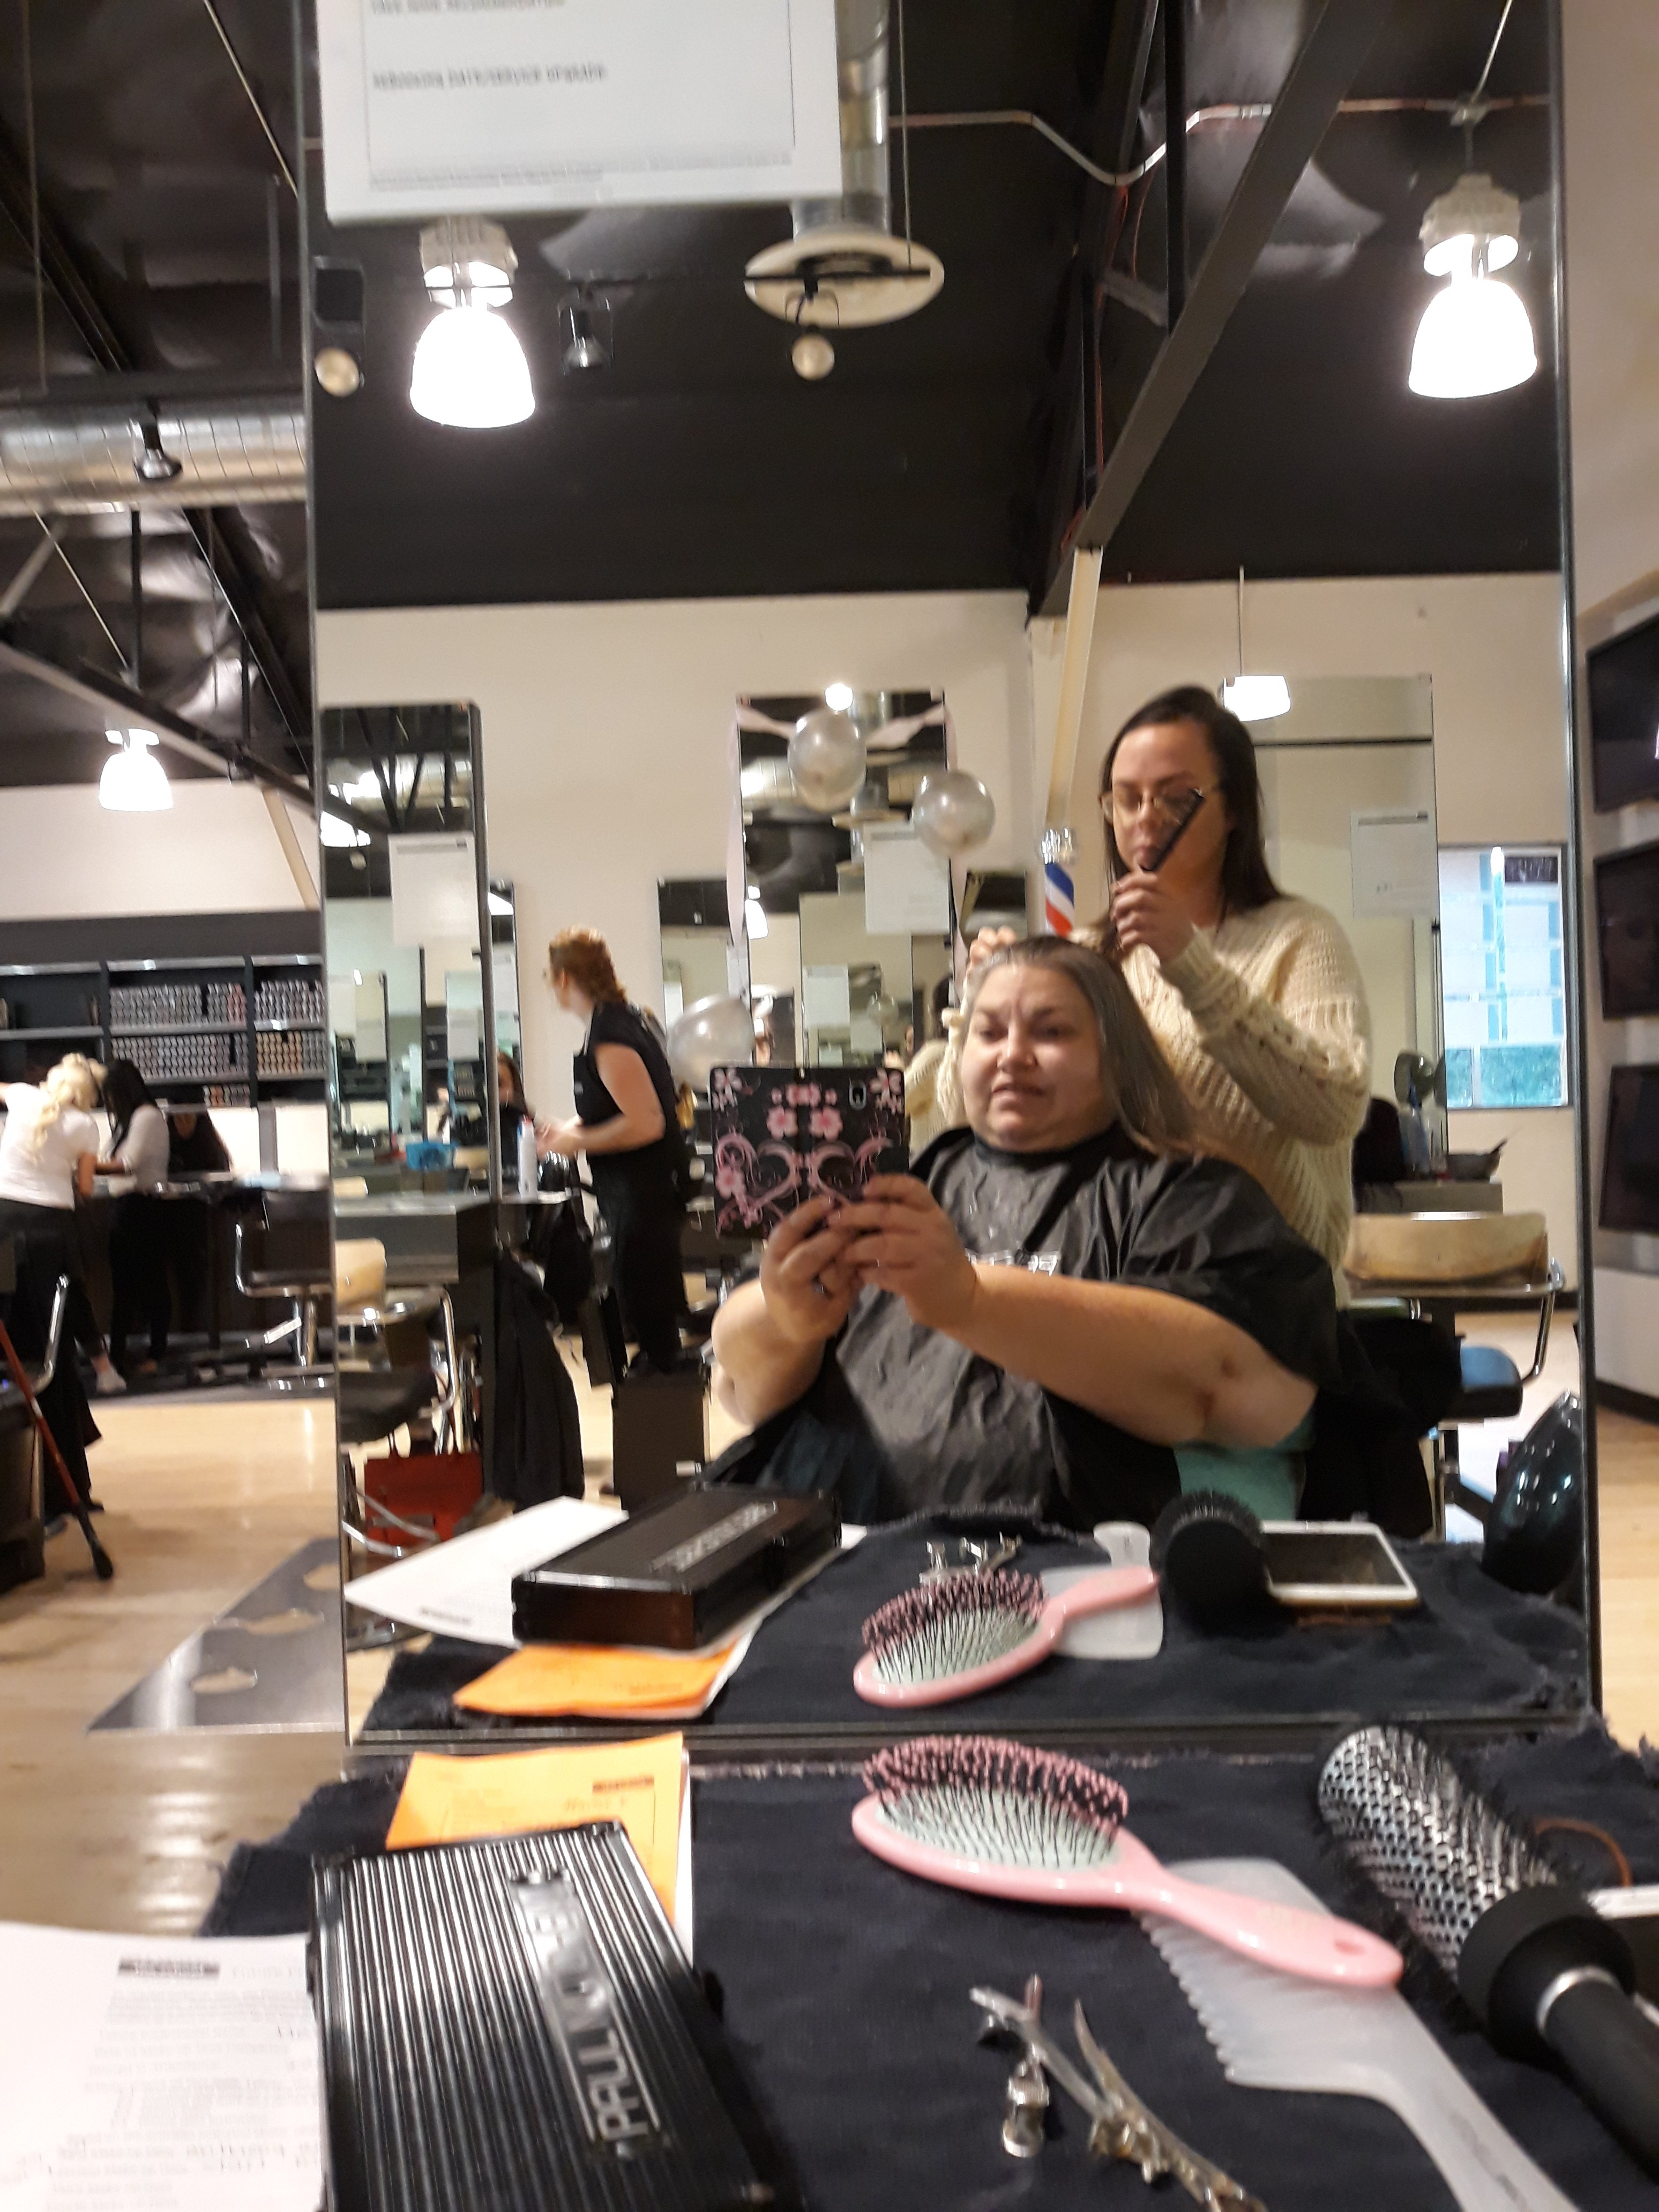 Kimberlee Plezia getting her hair cut and colored at Paul Mitchell Studios in Colorado Springs, CO